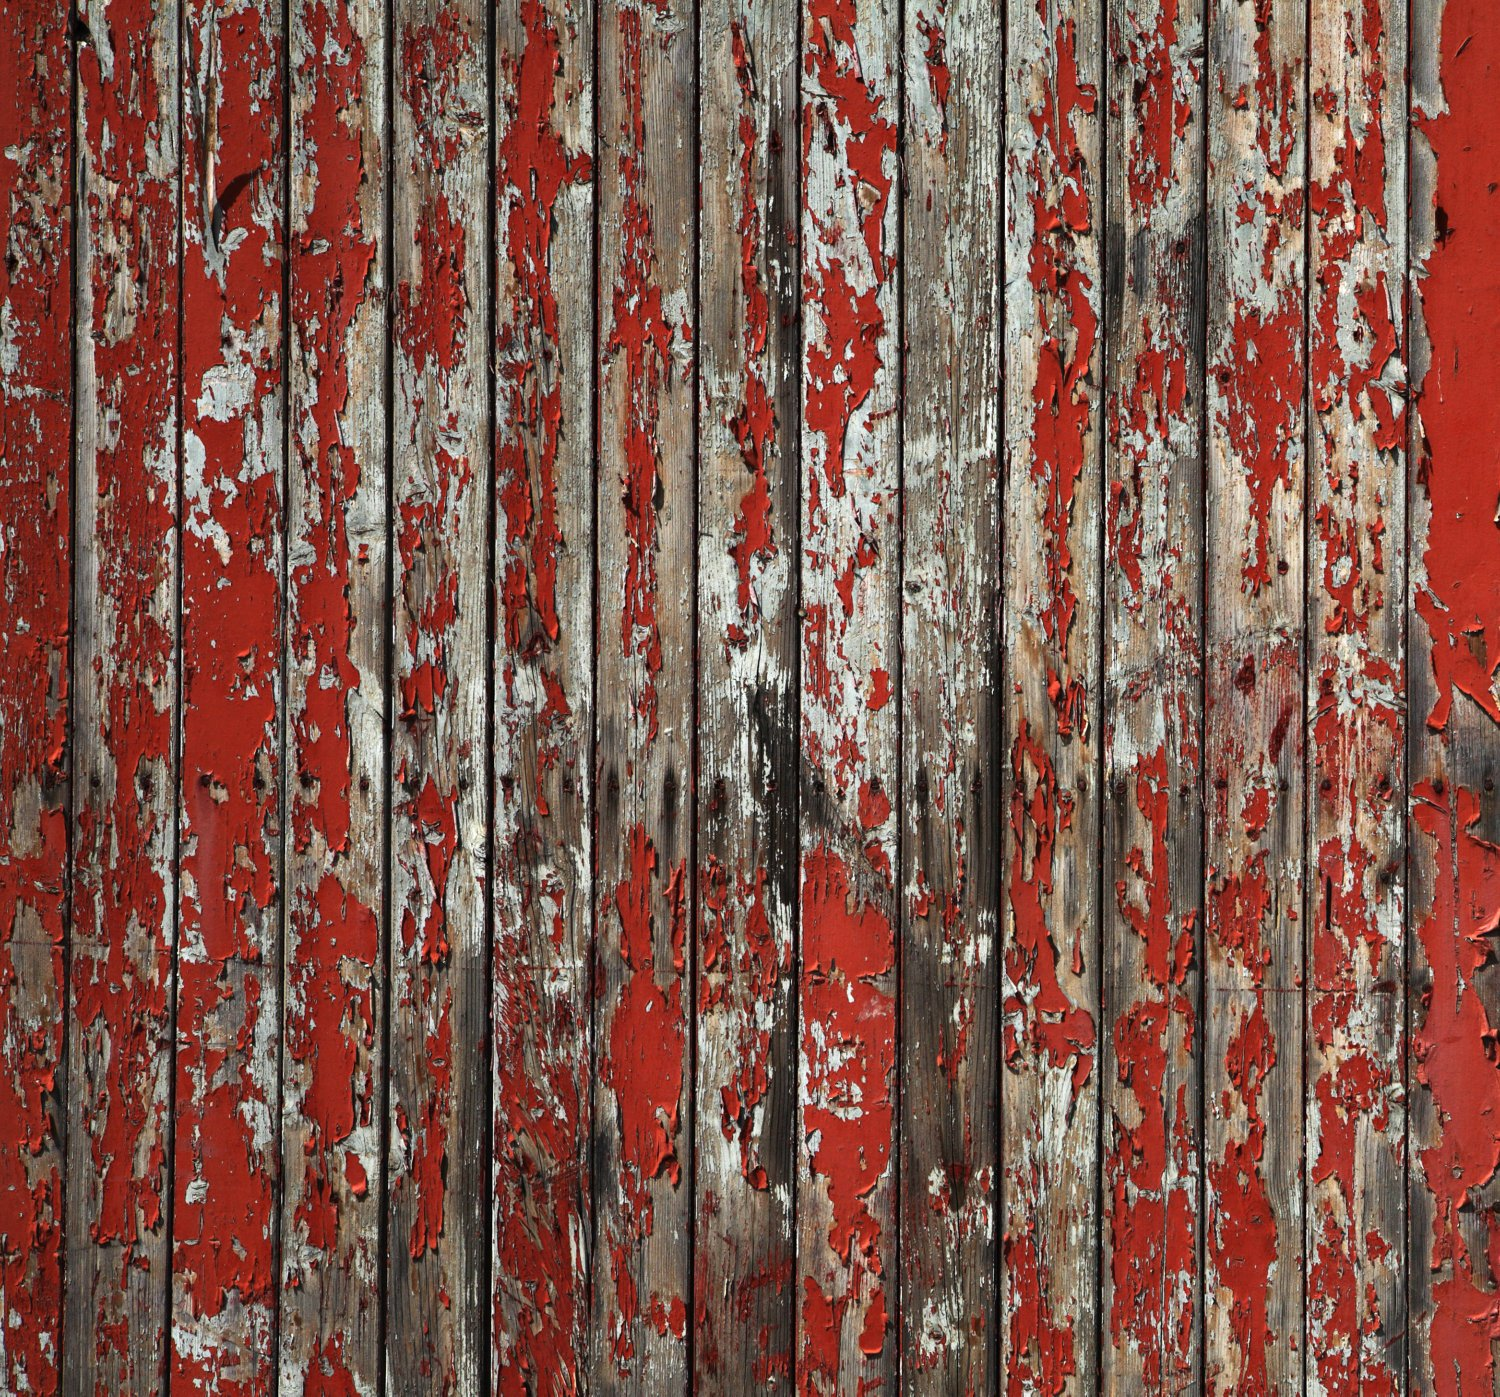 Red Barn Wood Wallpaper - WallpaperSafari